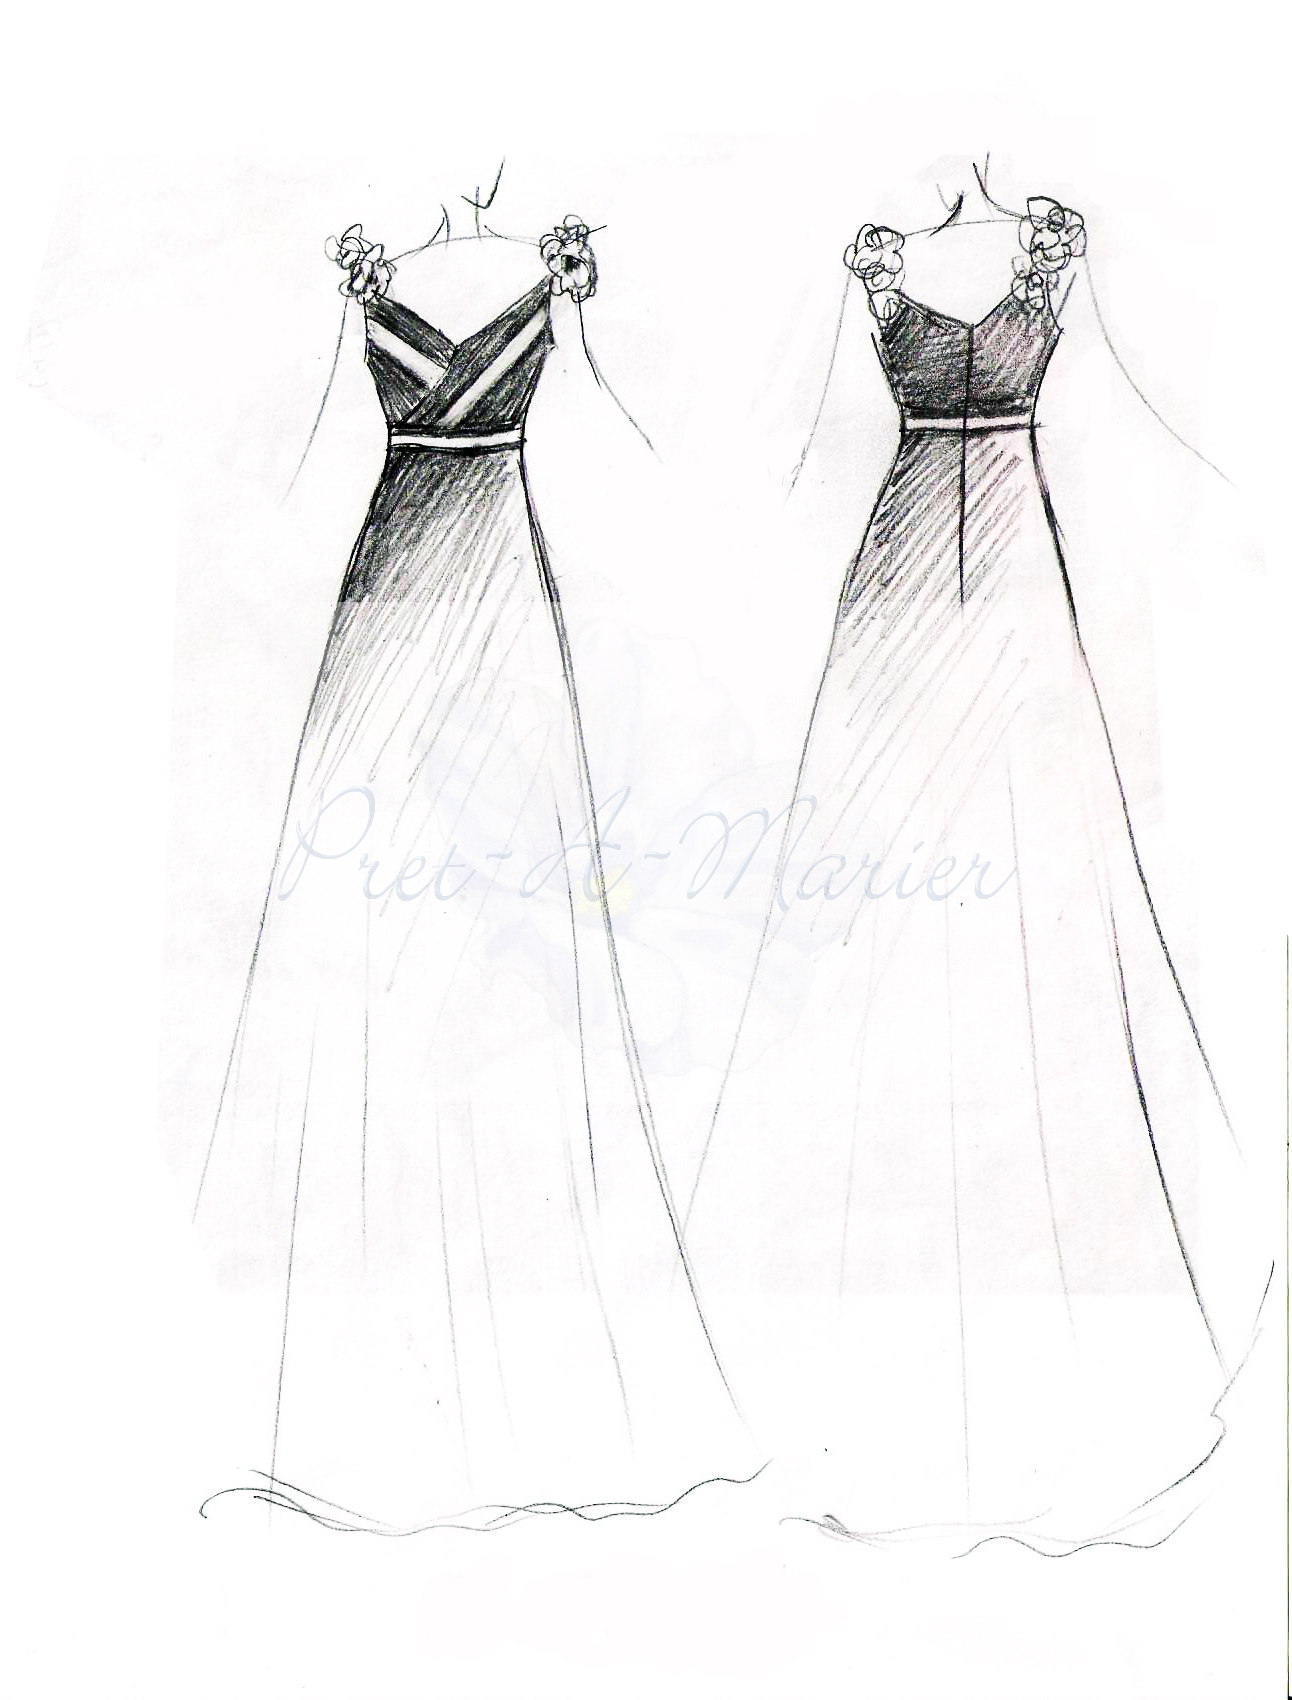 Gallery For gt Dress Designs Drawings 2012